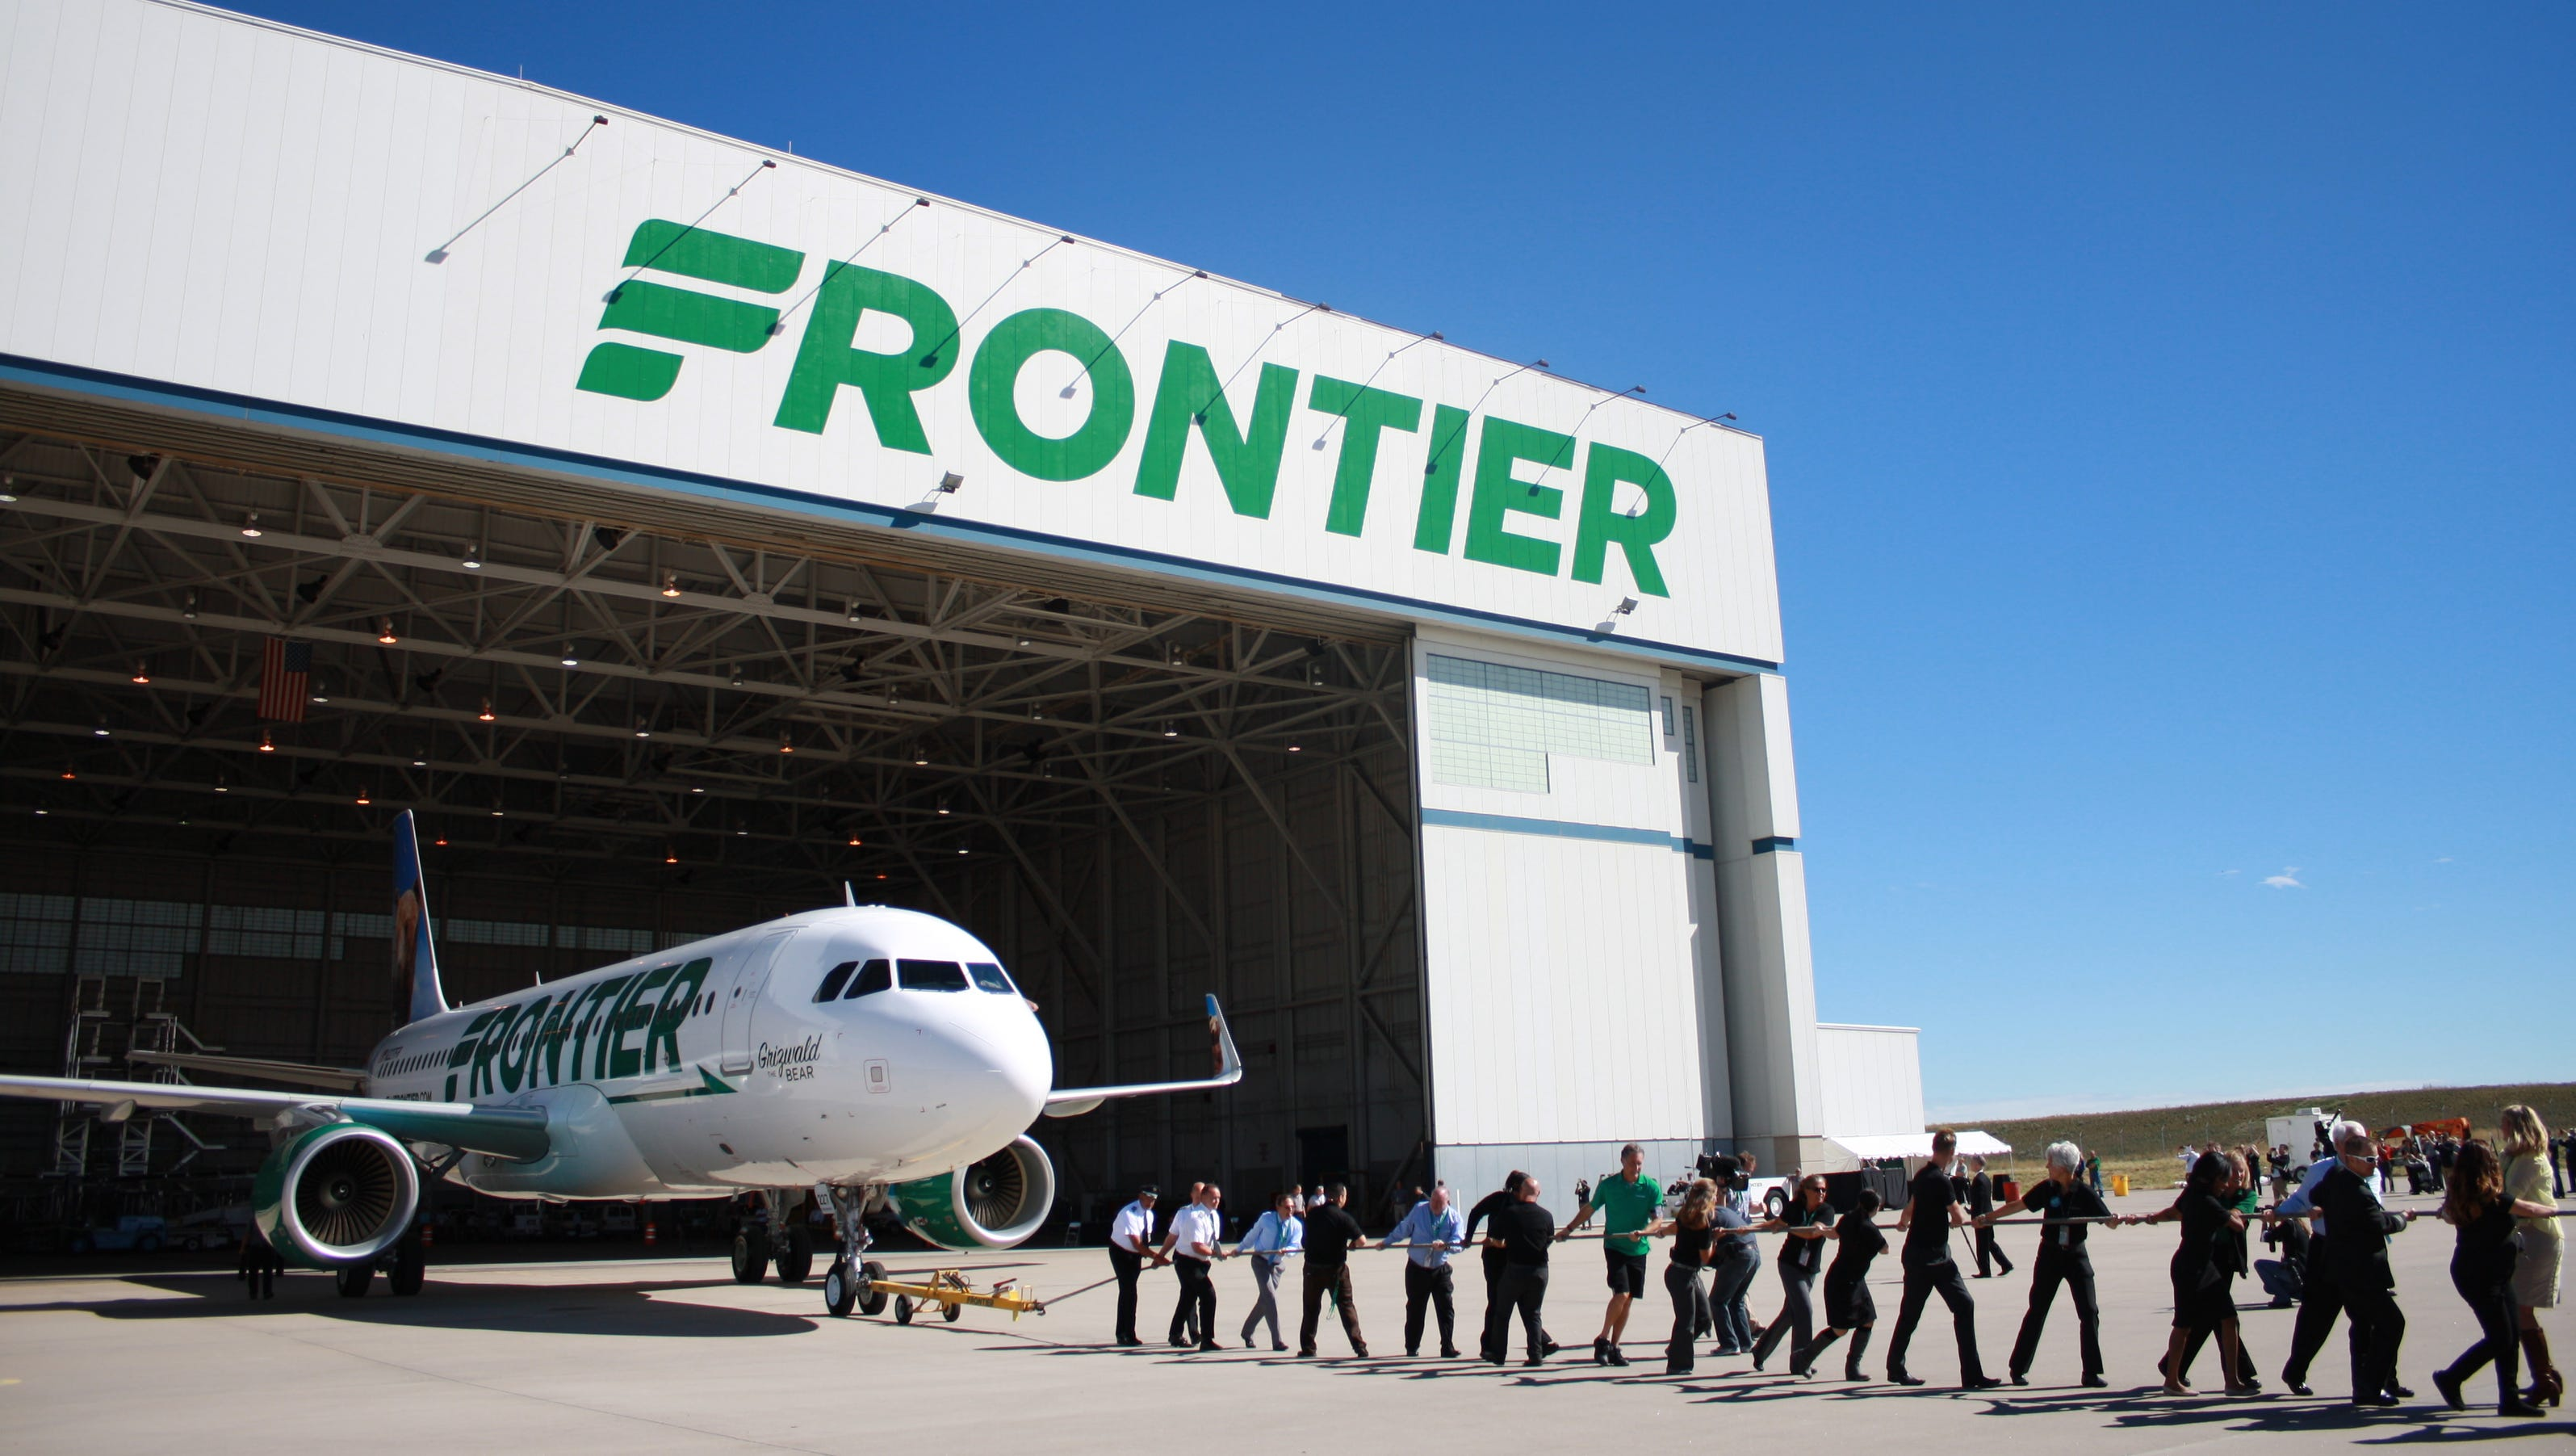 frontier airlines rebranding campaign - frontier airlines rebranding campaign after baseline studies indicated that frontier airlines was unrecognizable in its own core business area, they decided a new image was in order frontier airlines launched their new rebranding campaign calling itself a whole different animal.